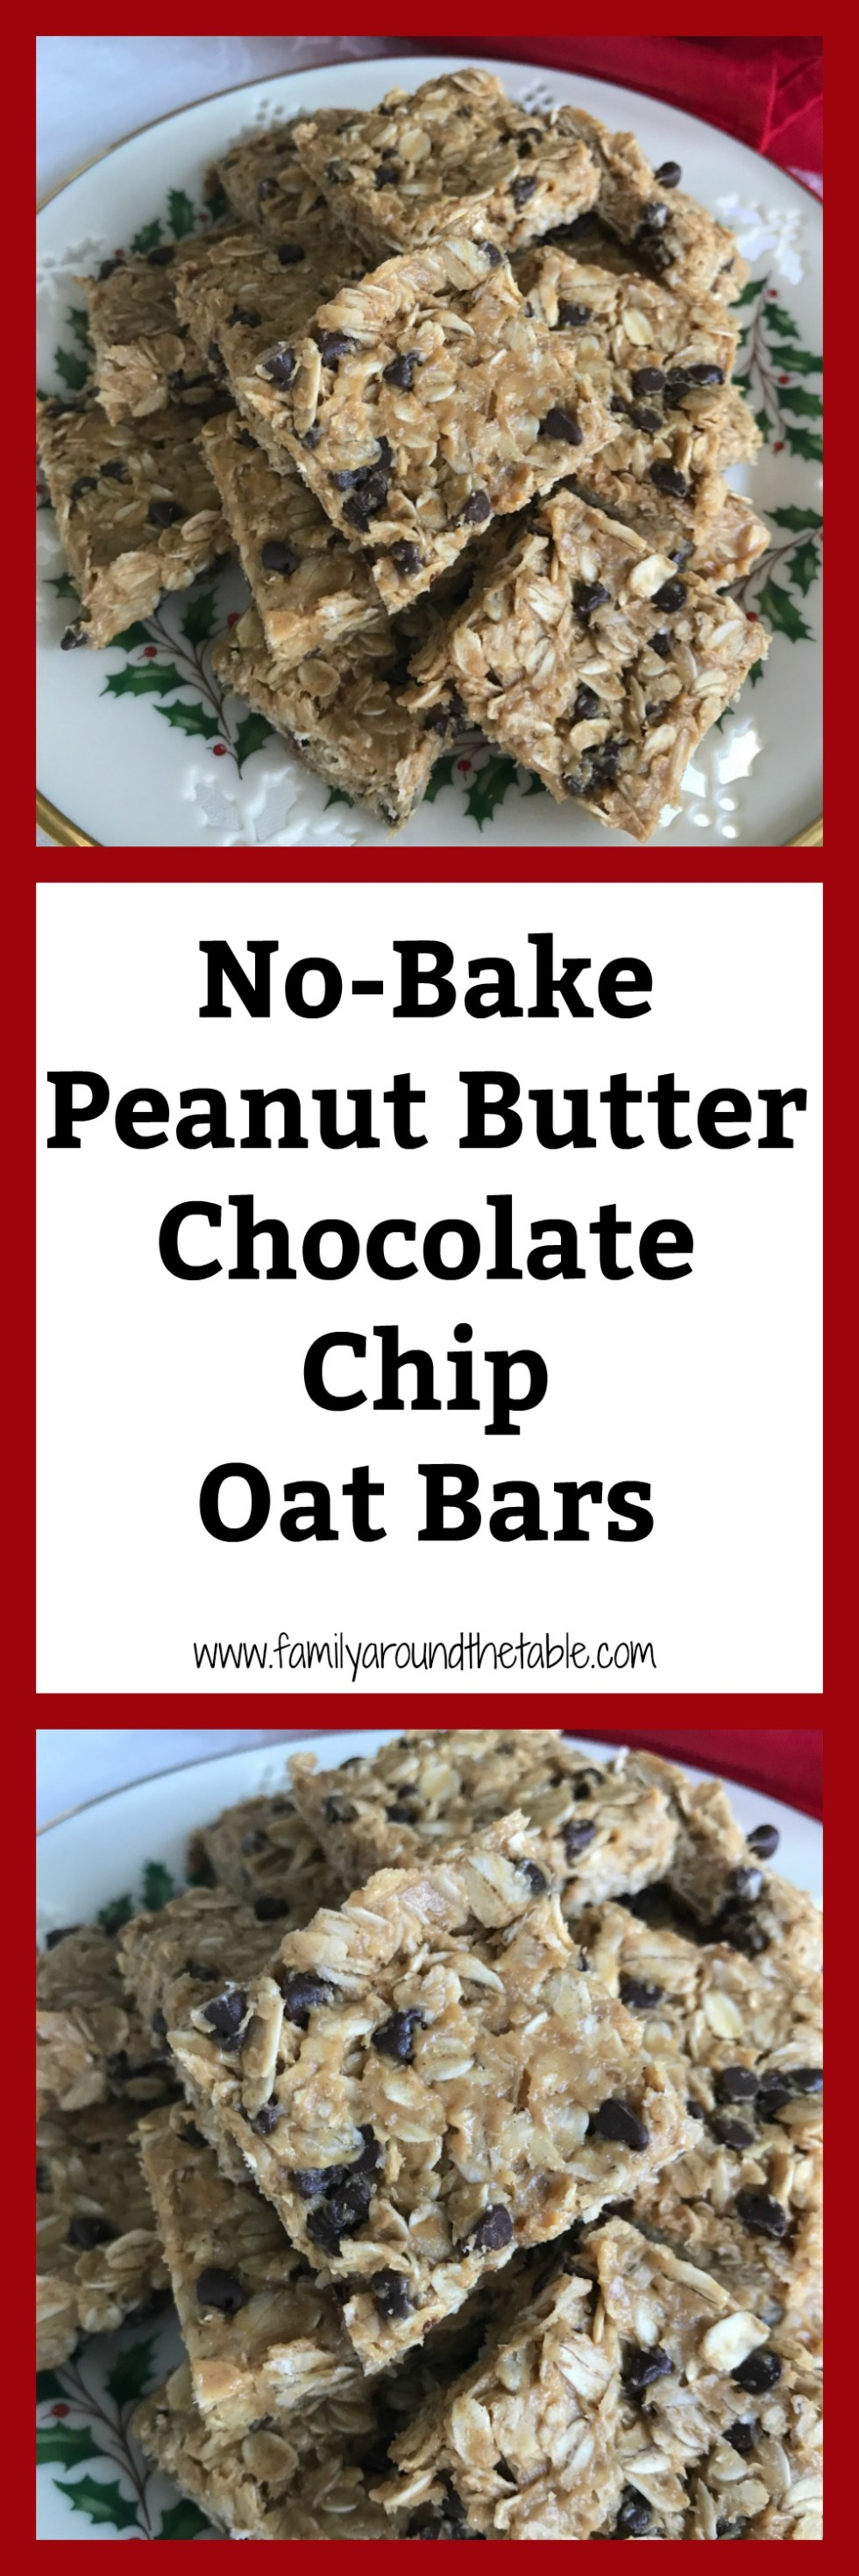 No-Bake peanut butter chocolate chip oat bars are easy enough for kids to make.